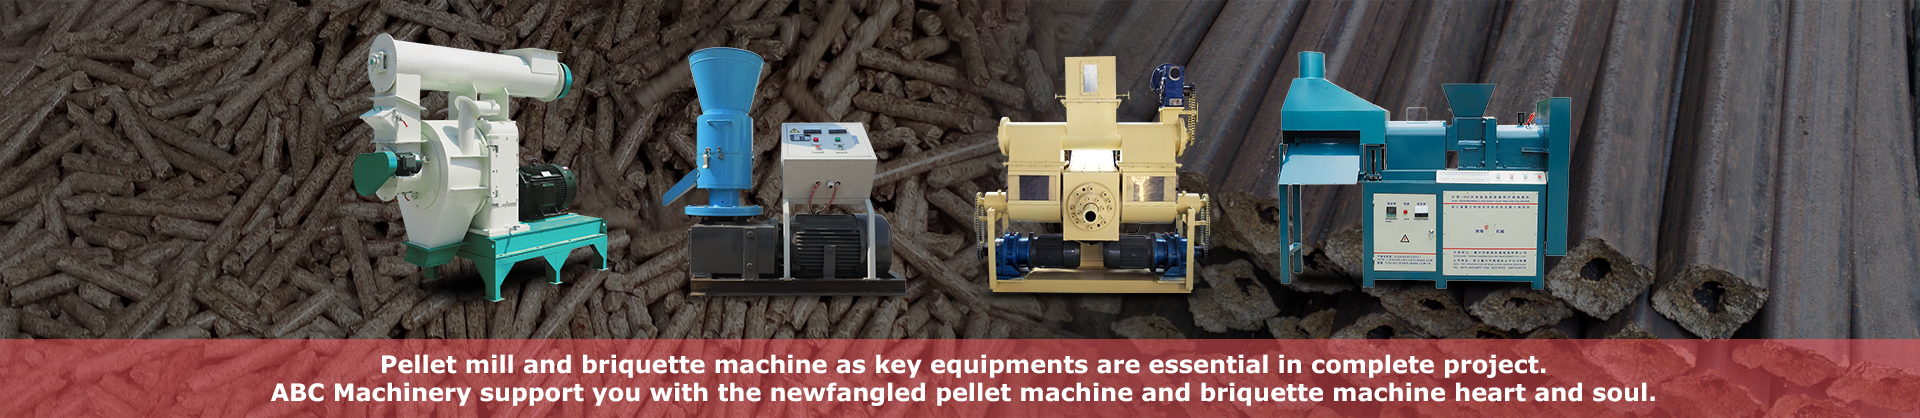 pellet mill and briquette machine